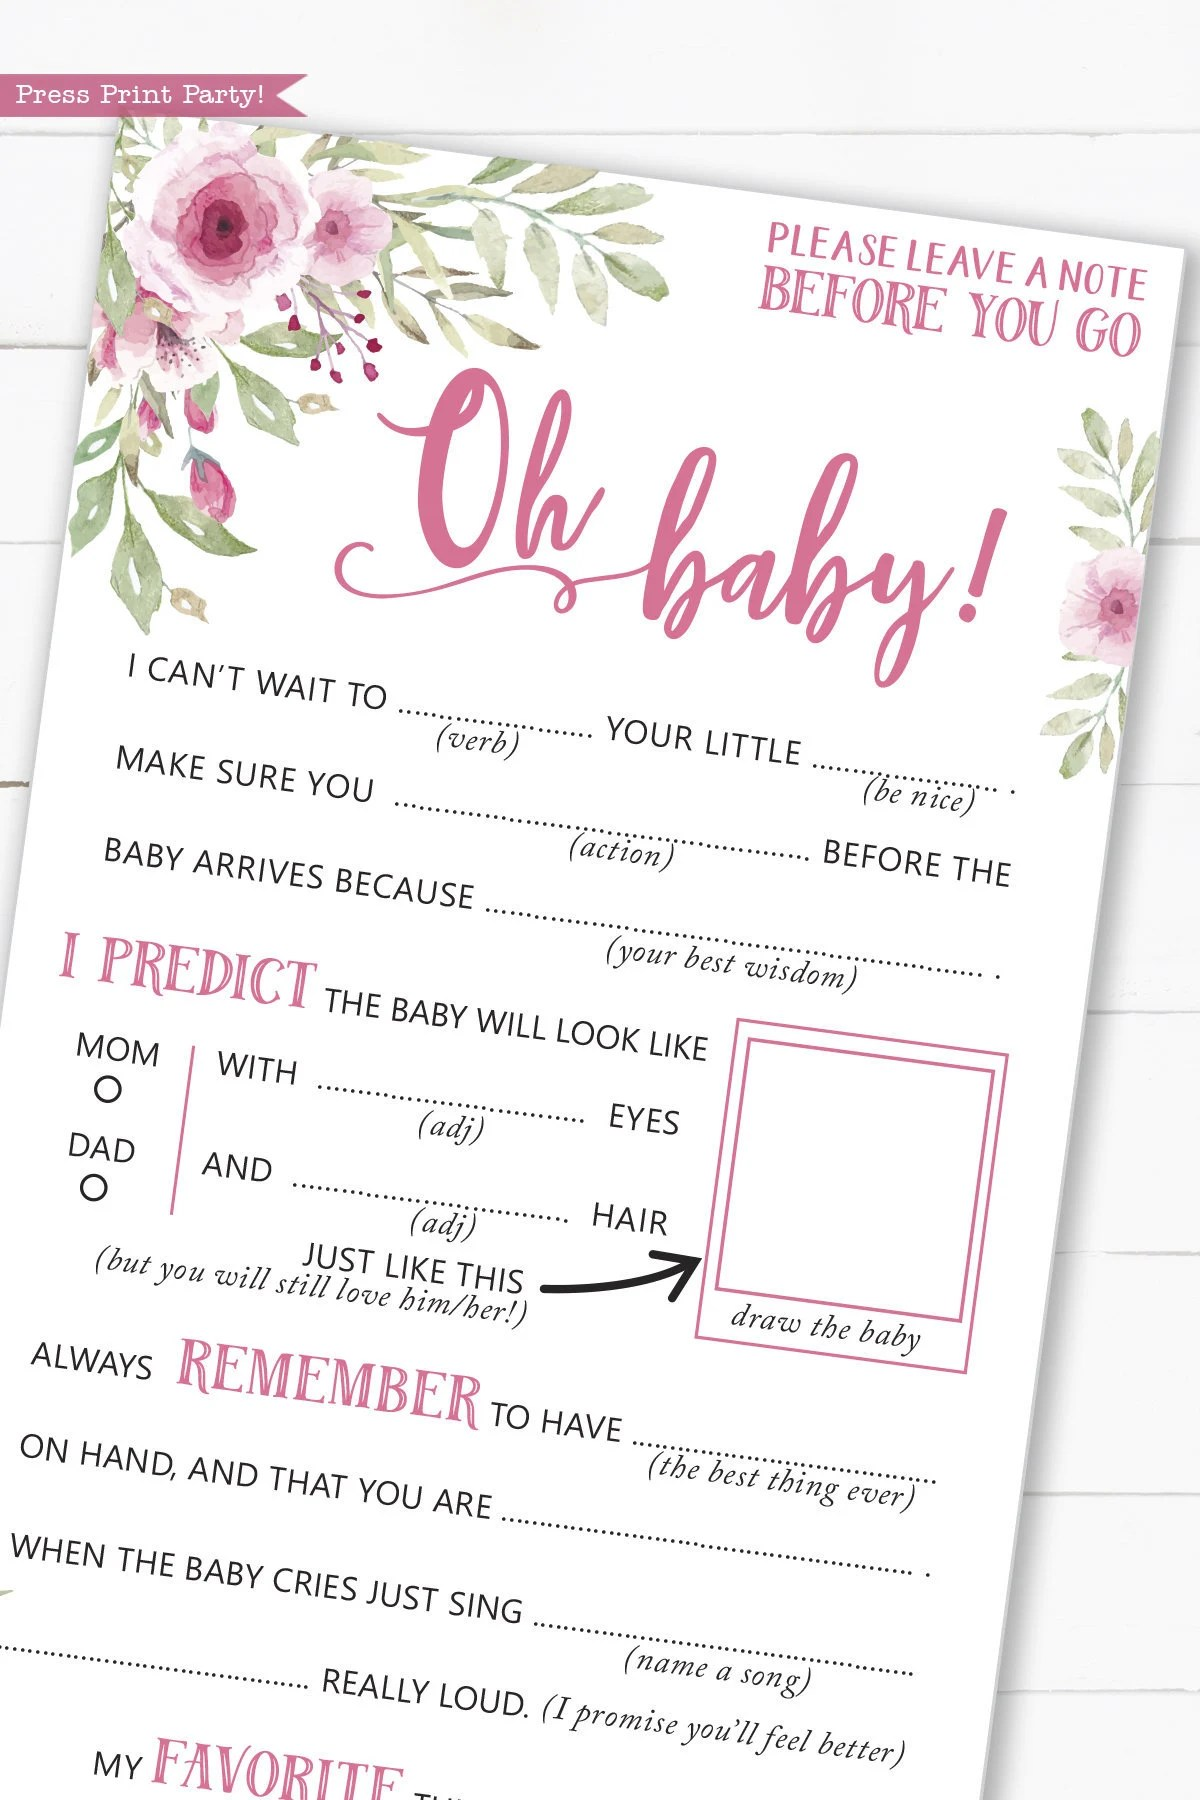 Baby Shower Advice Cards : shower, advice, cards, Advice, Shower, Printable, Game,, Funny, Libs,, Flowers,, Girls,, Guestbook, Wishes, Baby,, INSTANT, DOWNLOAD, Press, Print, Party!, Catch, Party